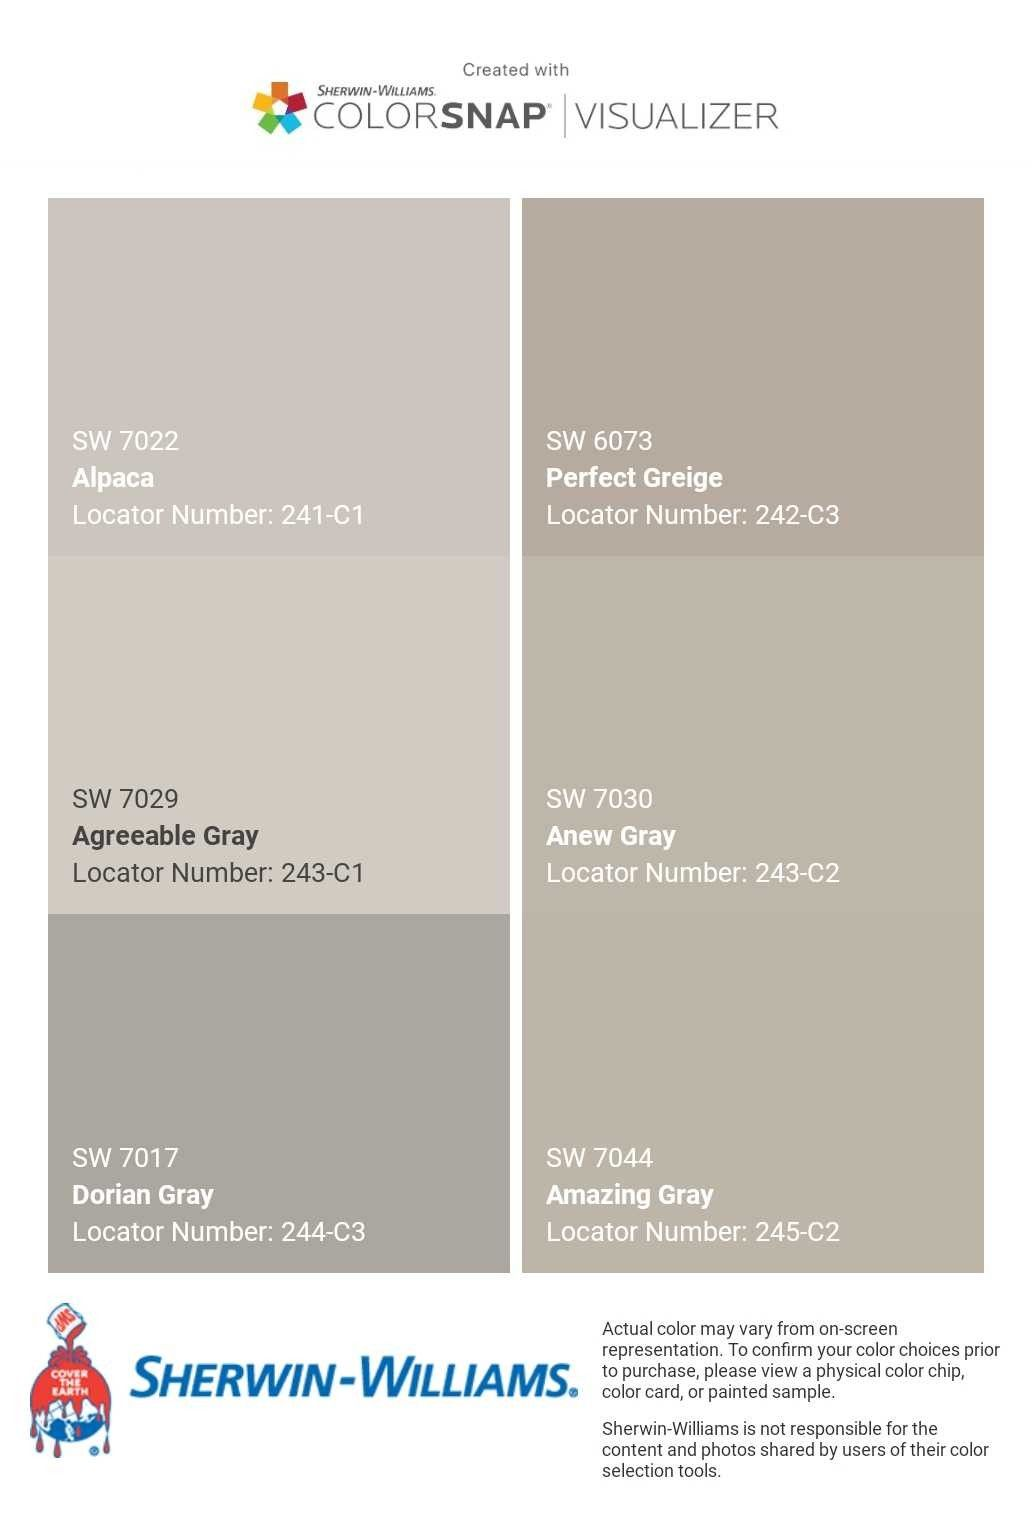 I Just Created This Color Palette With The Sherwin Williams Colorsnap Visualizer App On My Andro Anew Gray Agreeable Gray Sherwin Williams Greige Paint Colors